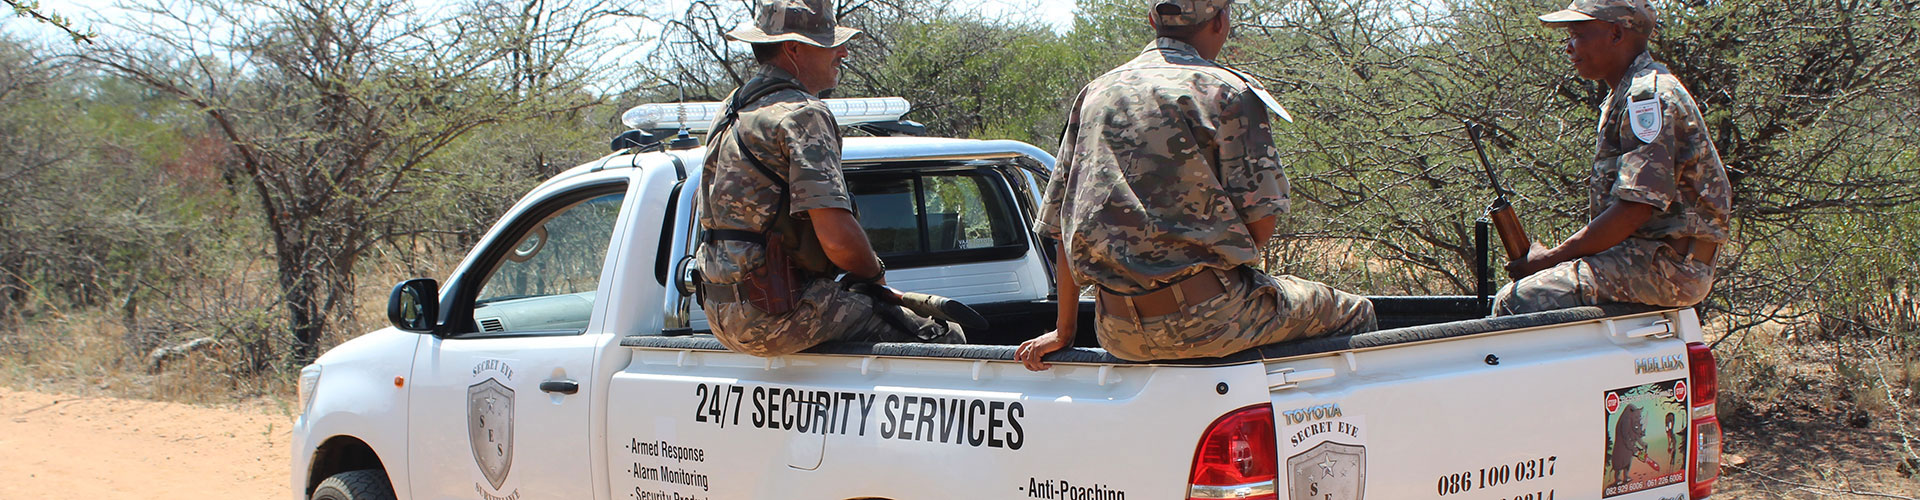 Anti-Poachers on Vehicle